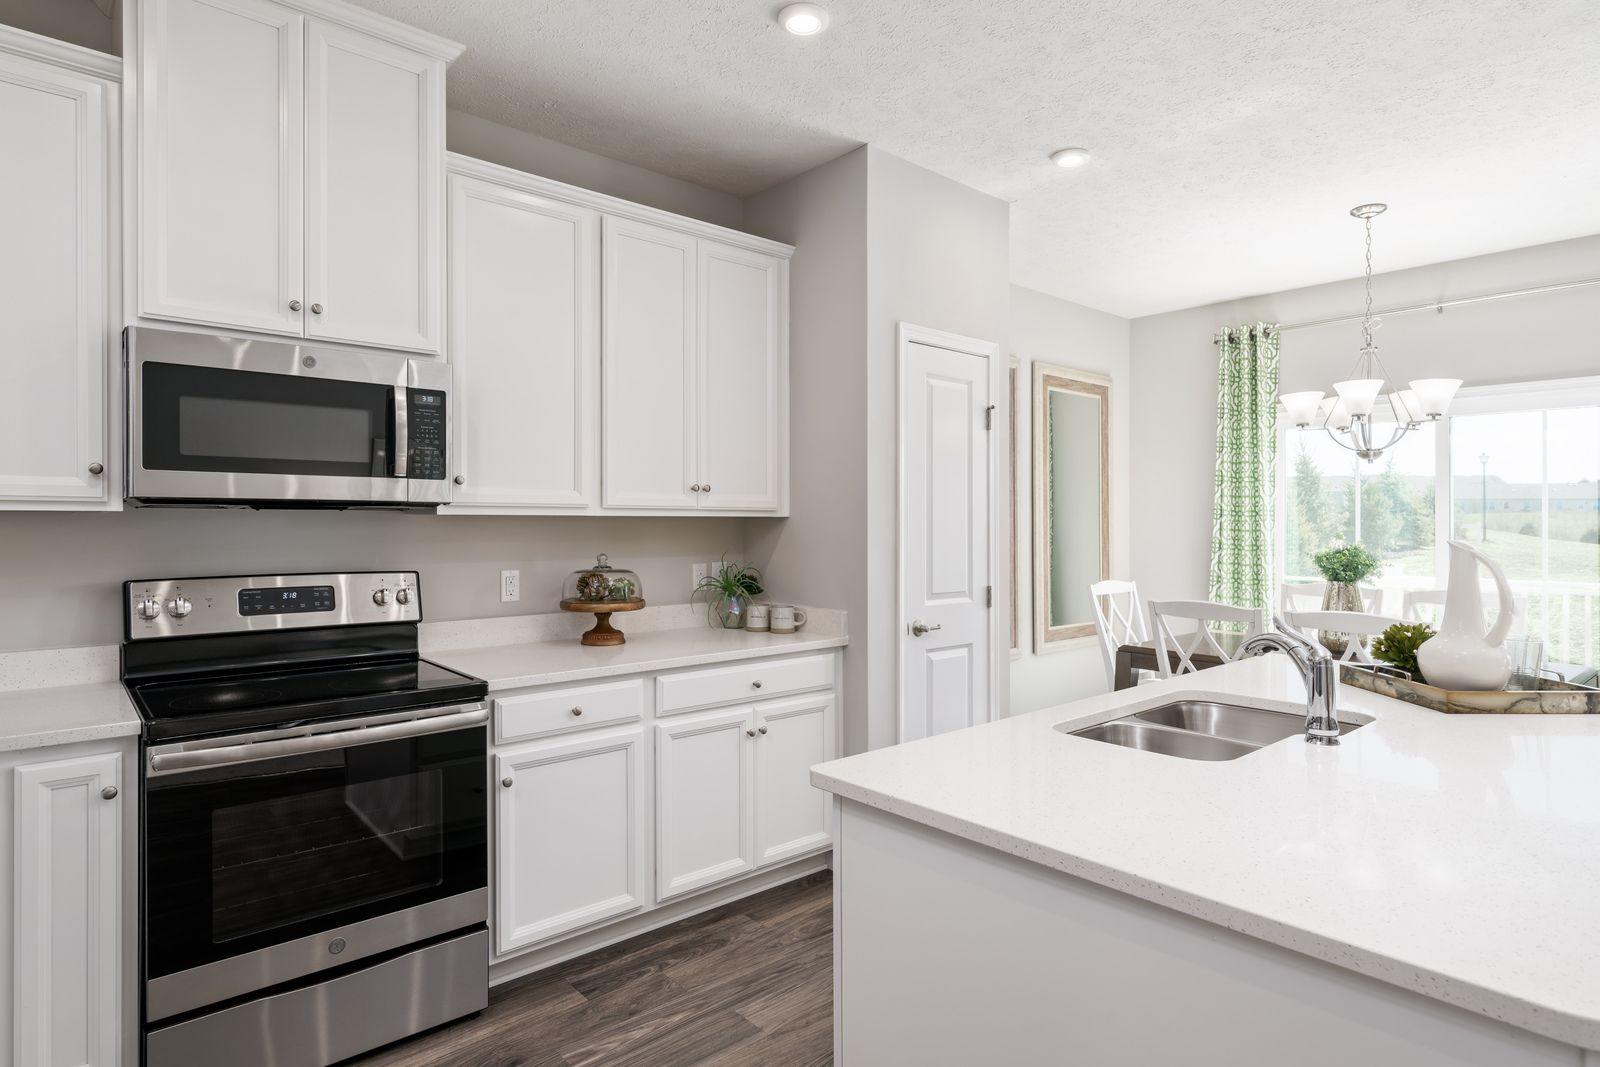 Kitchen featured in the Rosecliff By Ryan Homes in Chicago, IL